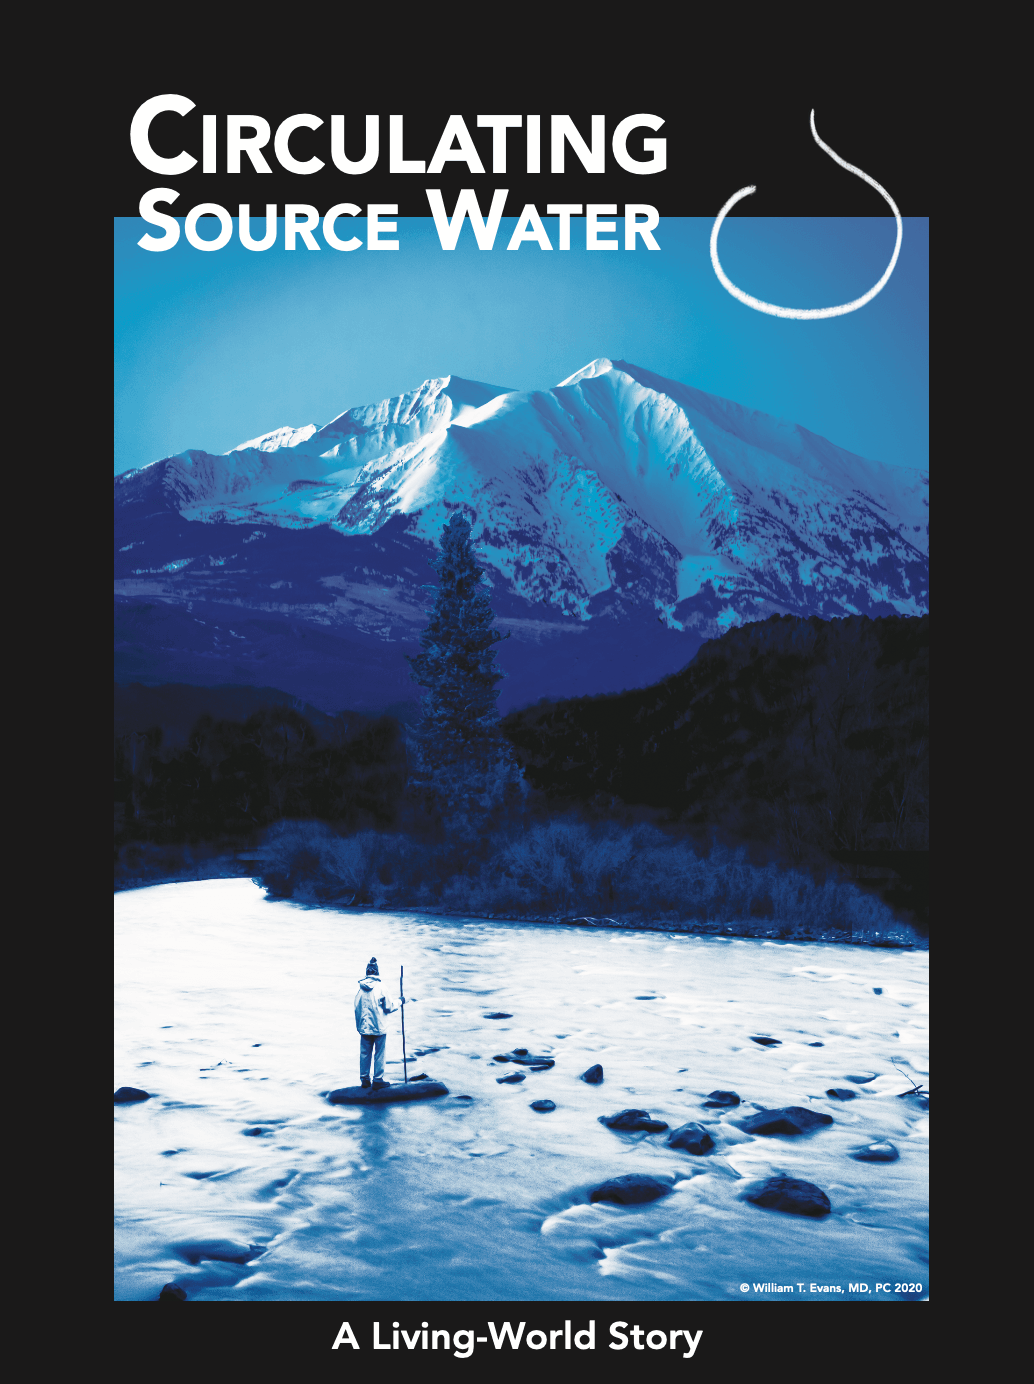 'Circulating Source Water' inspires healing thumbnail